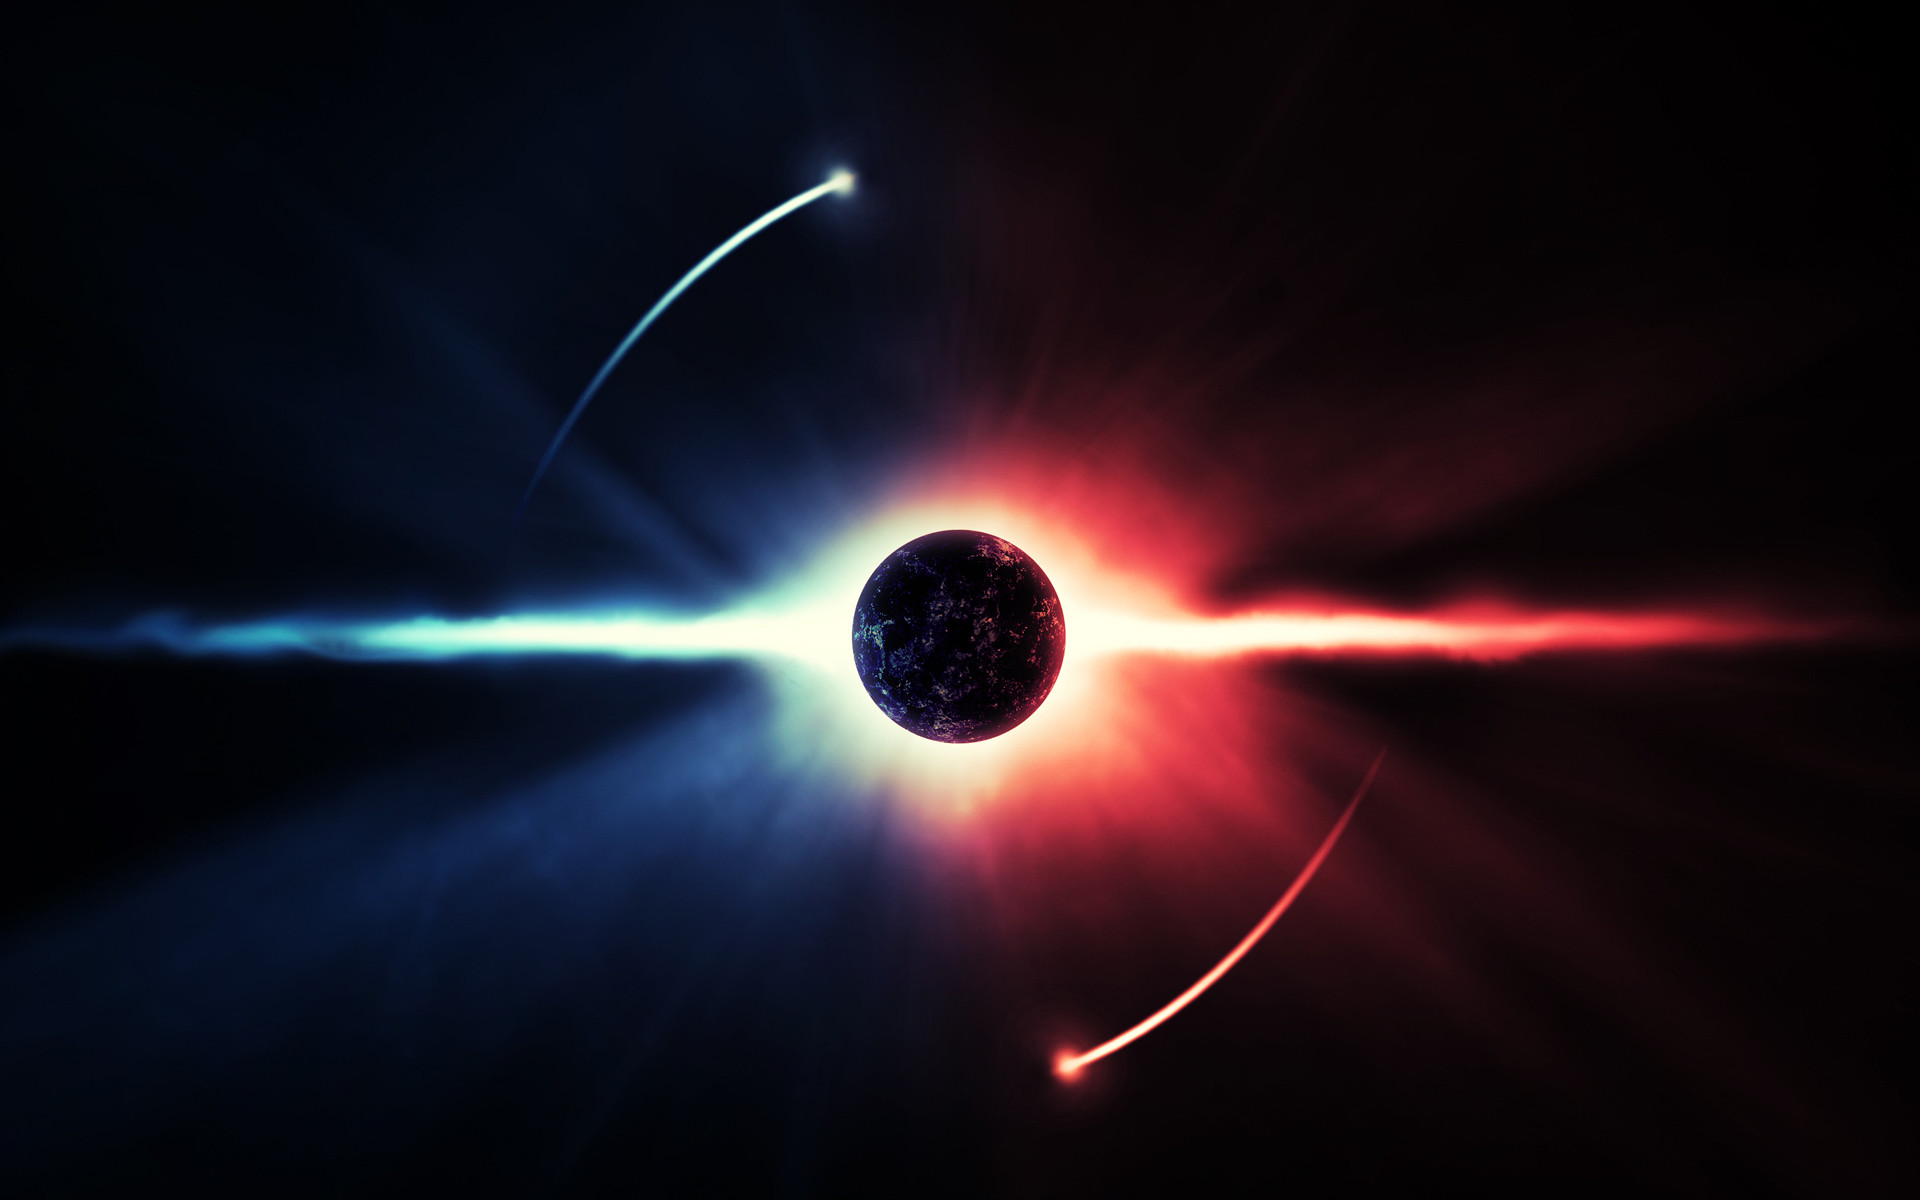 Solar Eclipse Wallpapers 57 images 1920x1200